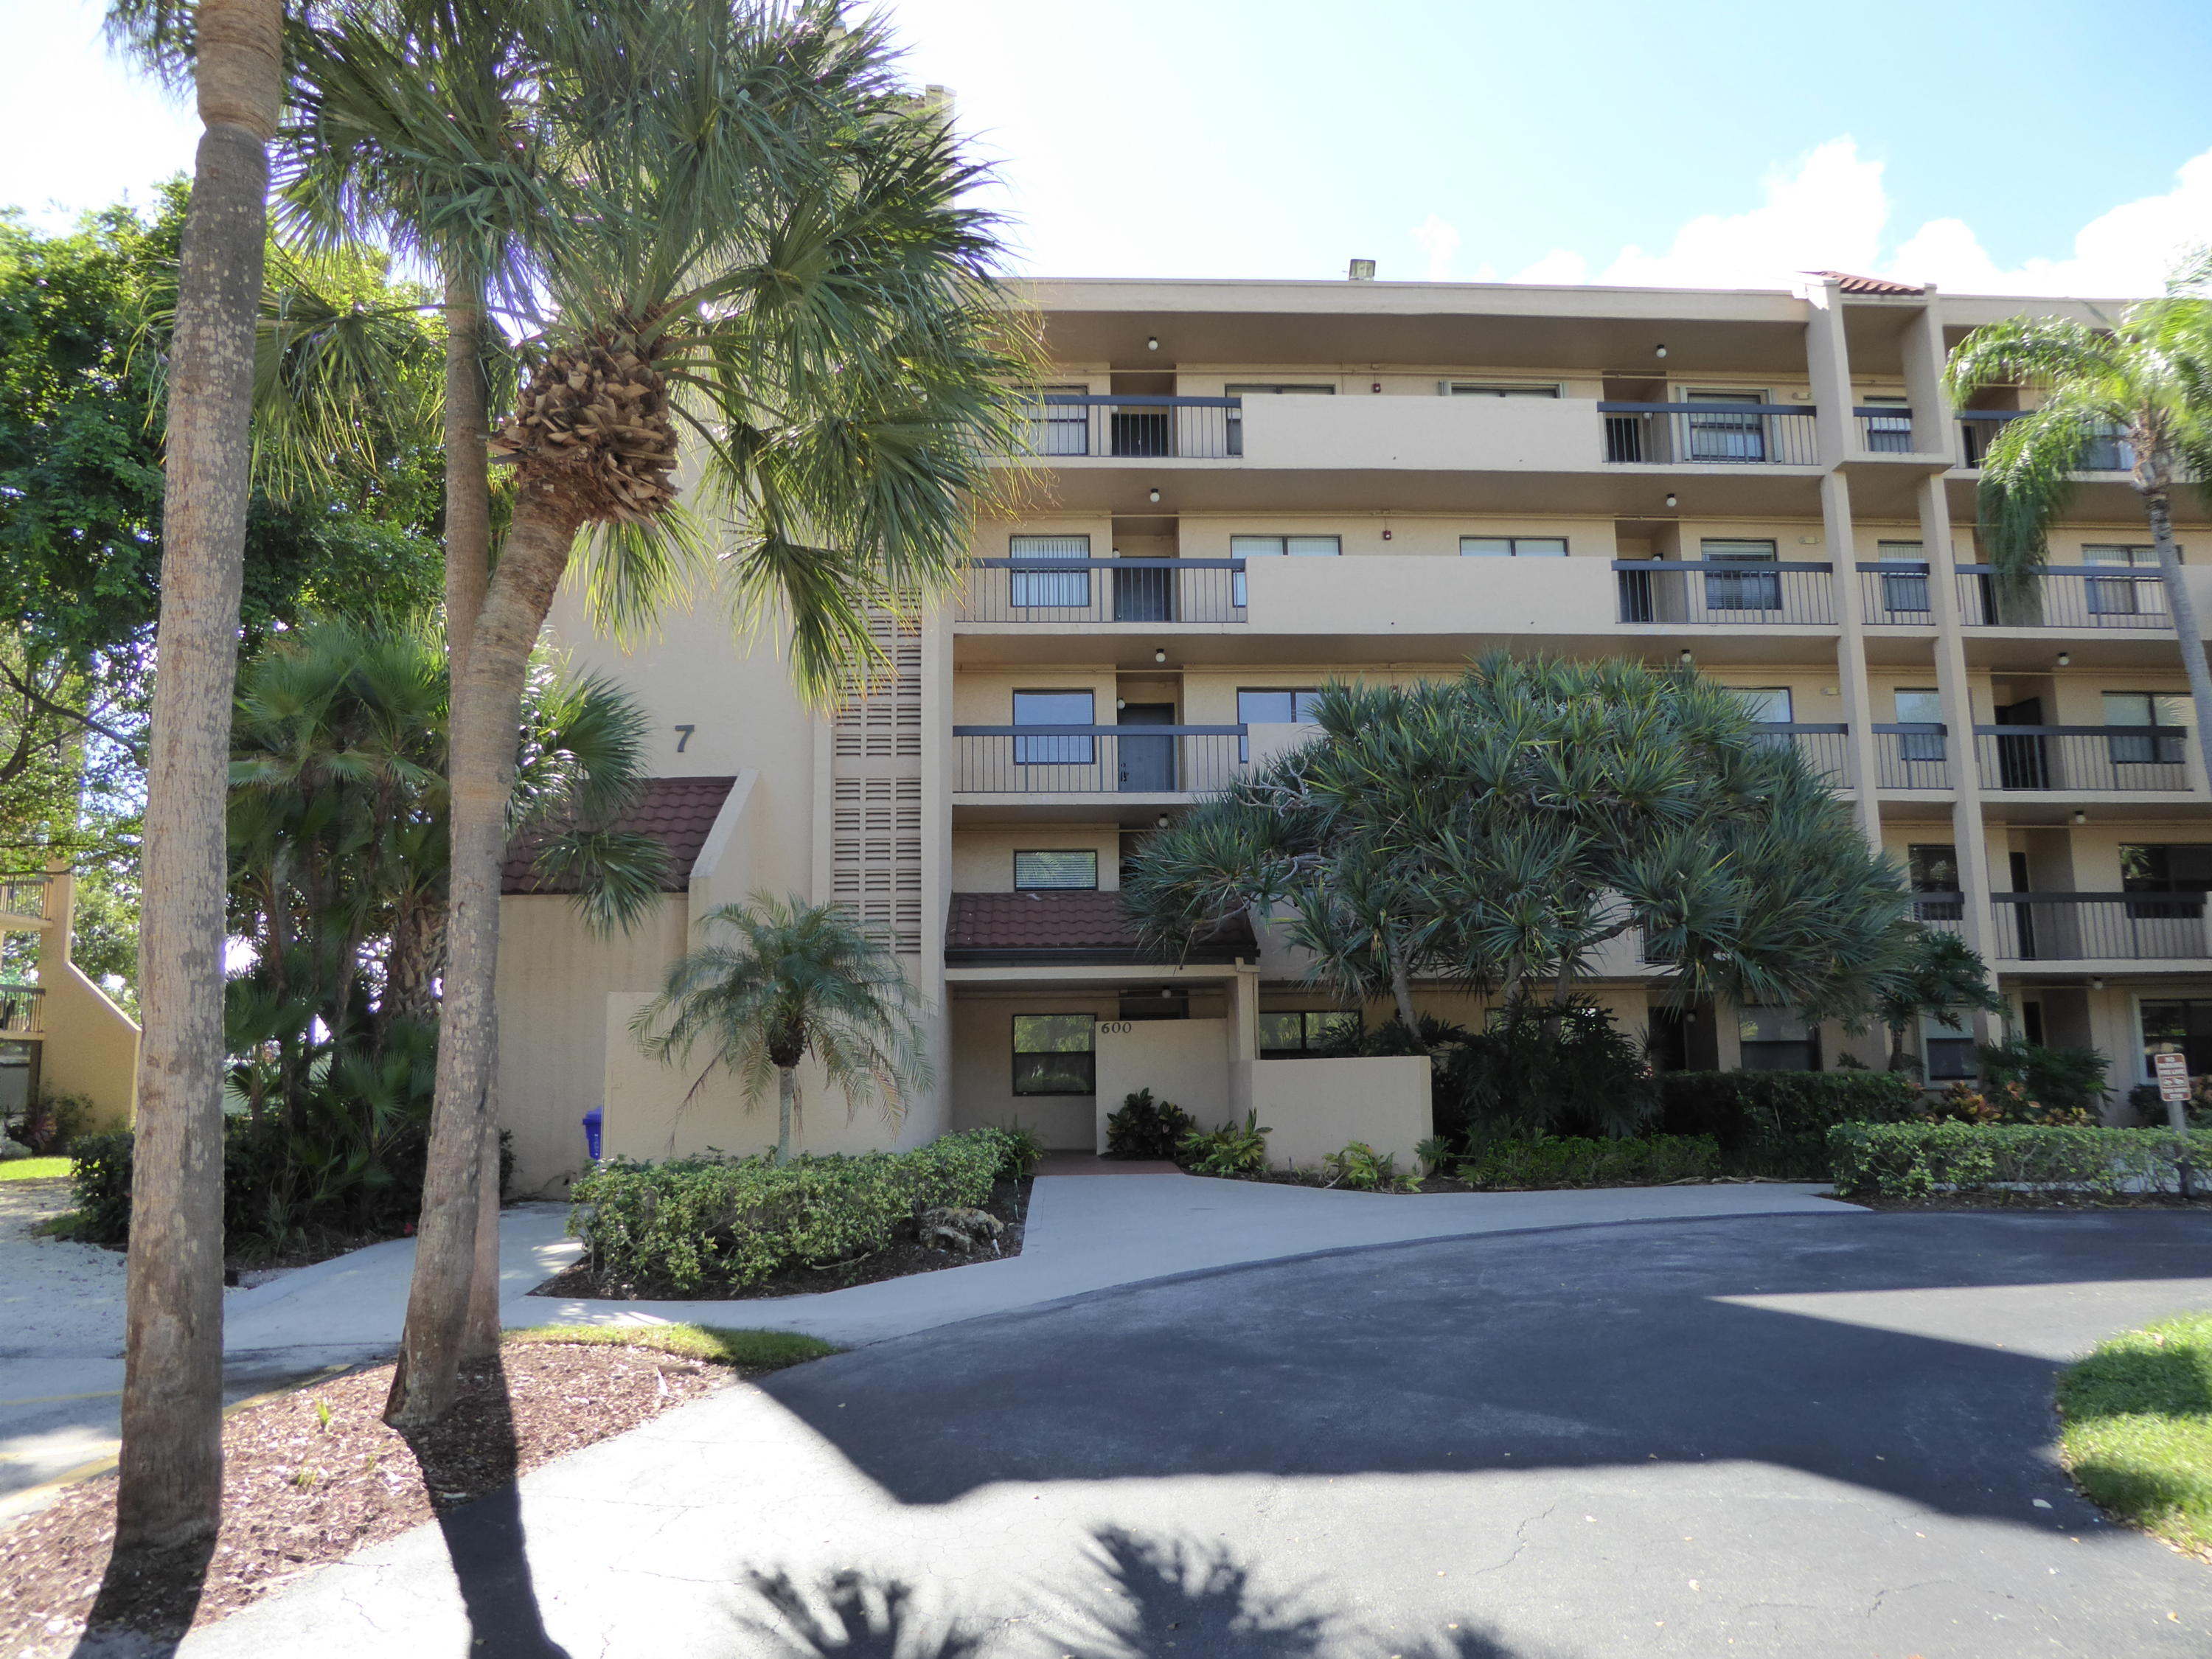 600 Egret Circle,Delray Beach,Florida 33444,2 Bedrooms Bedrooms,2 BathroomsBathrooms,Condo/coop,Egret,RX-10615619